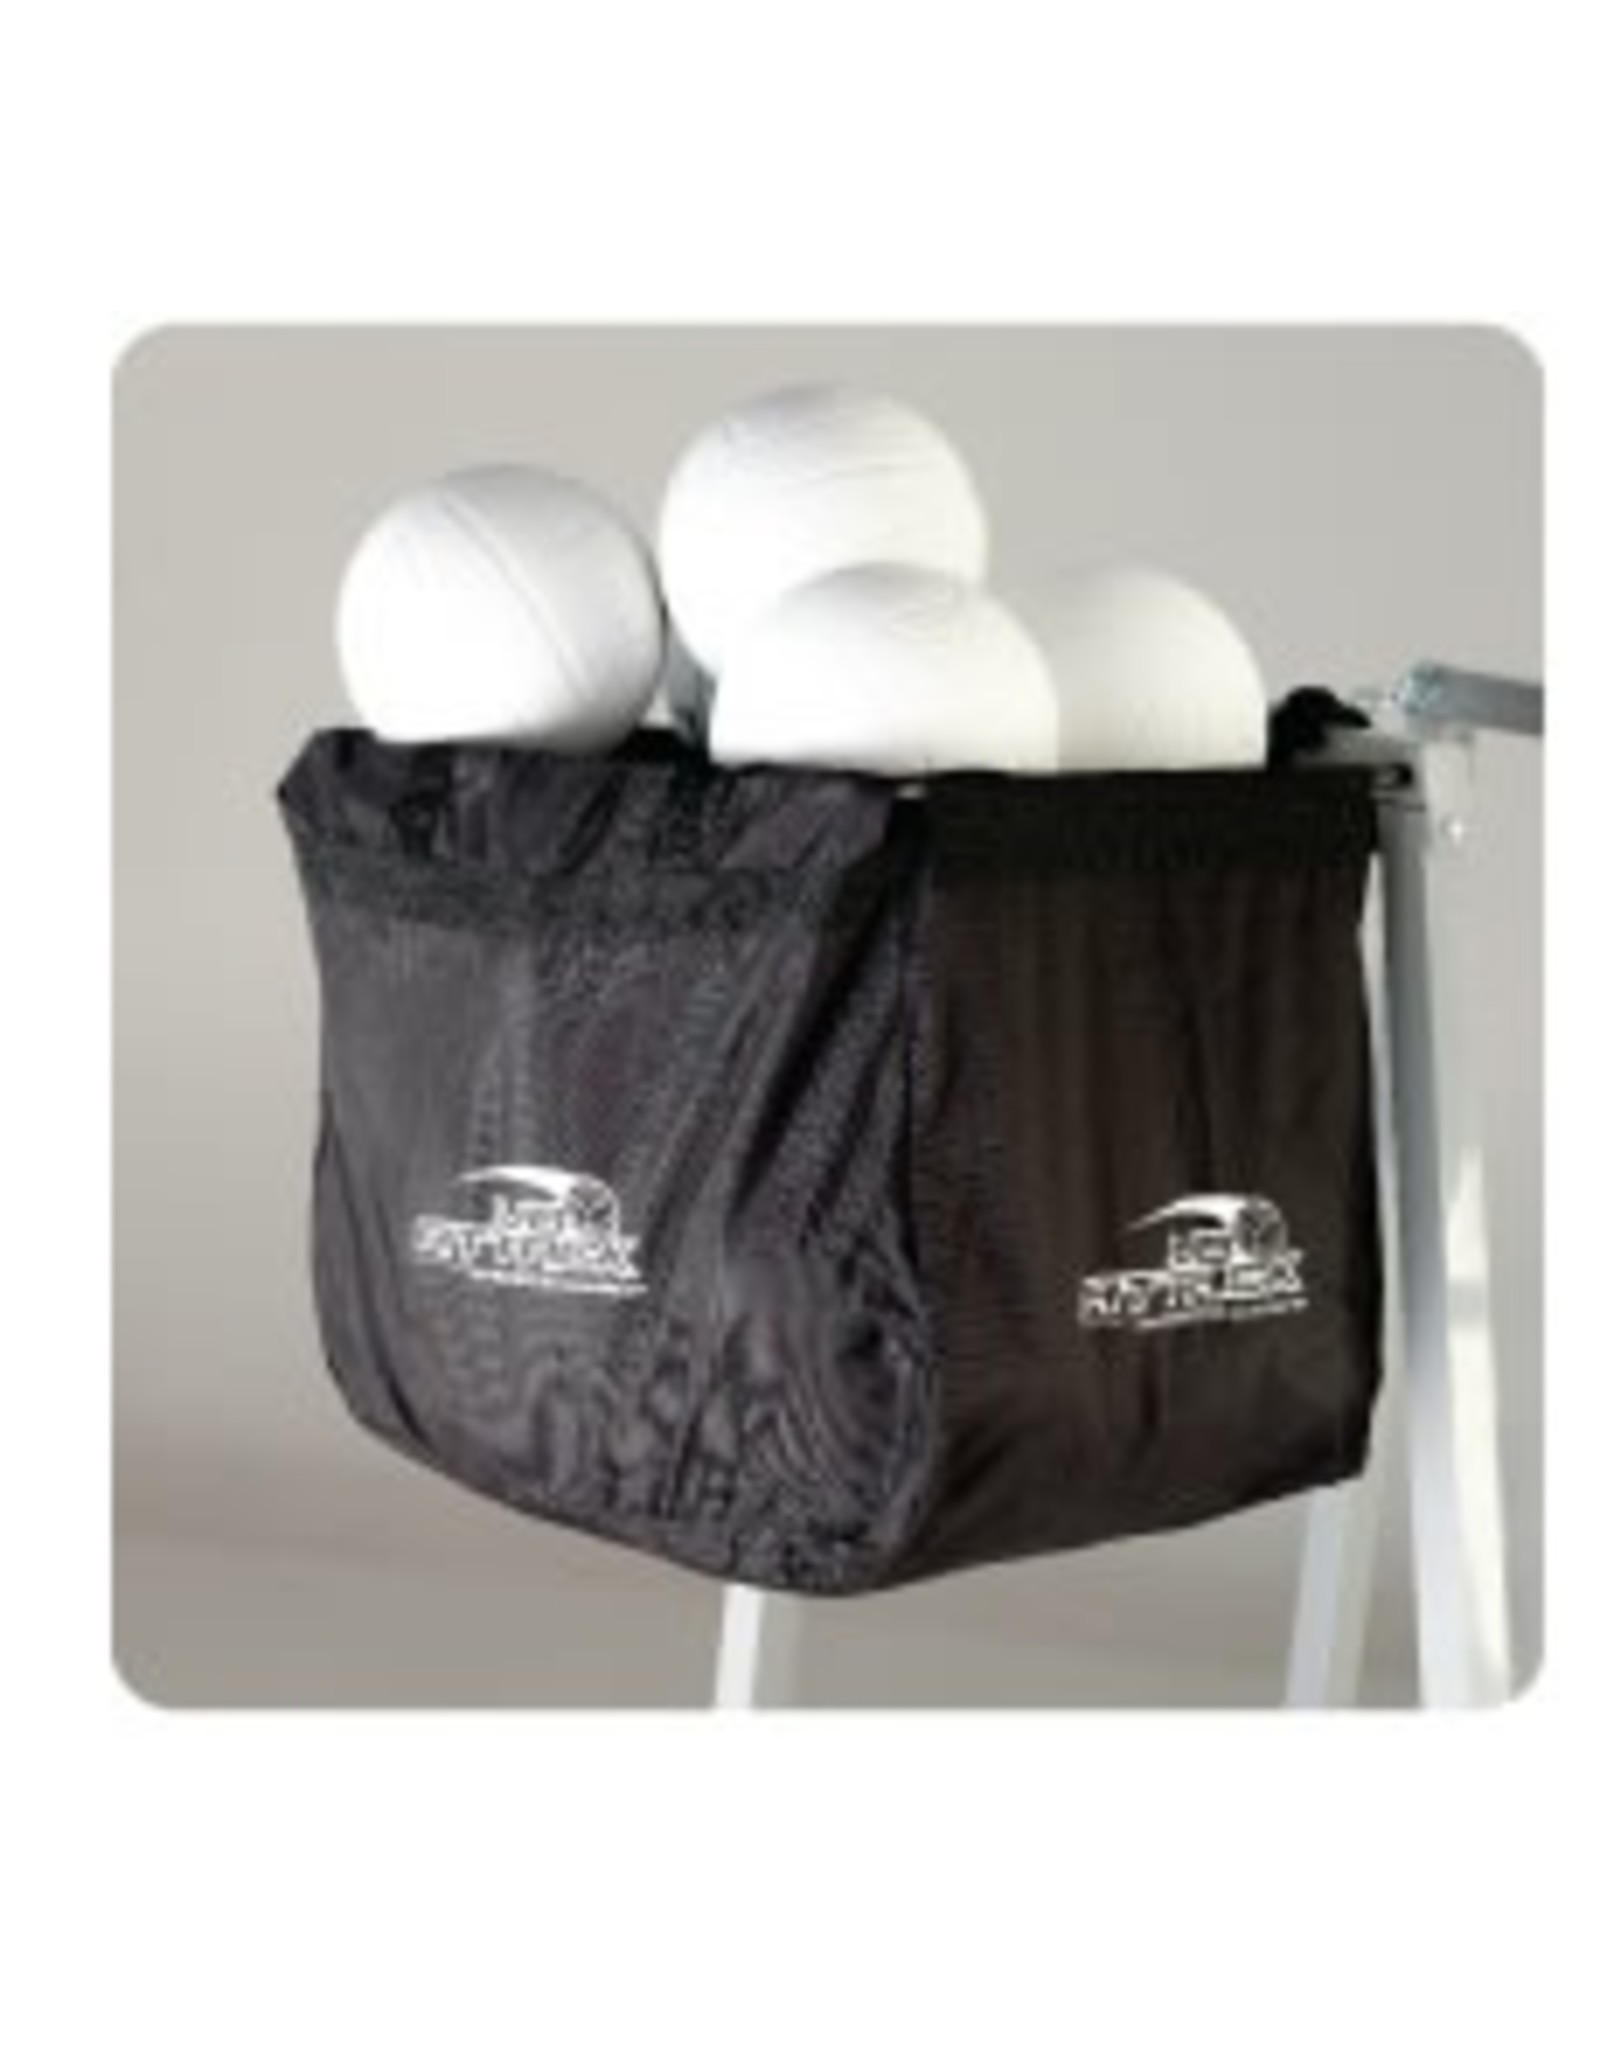 Sports Attack Ball bag and frame